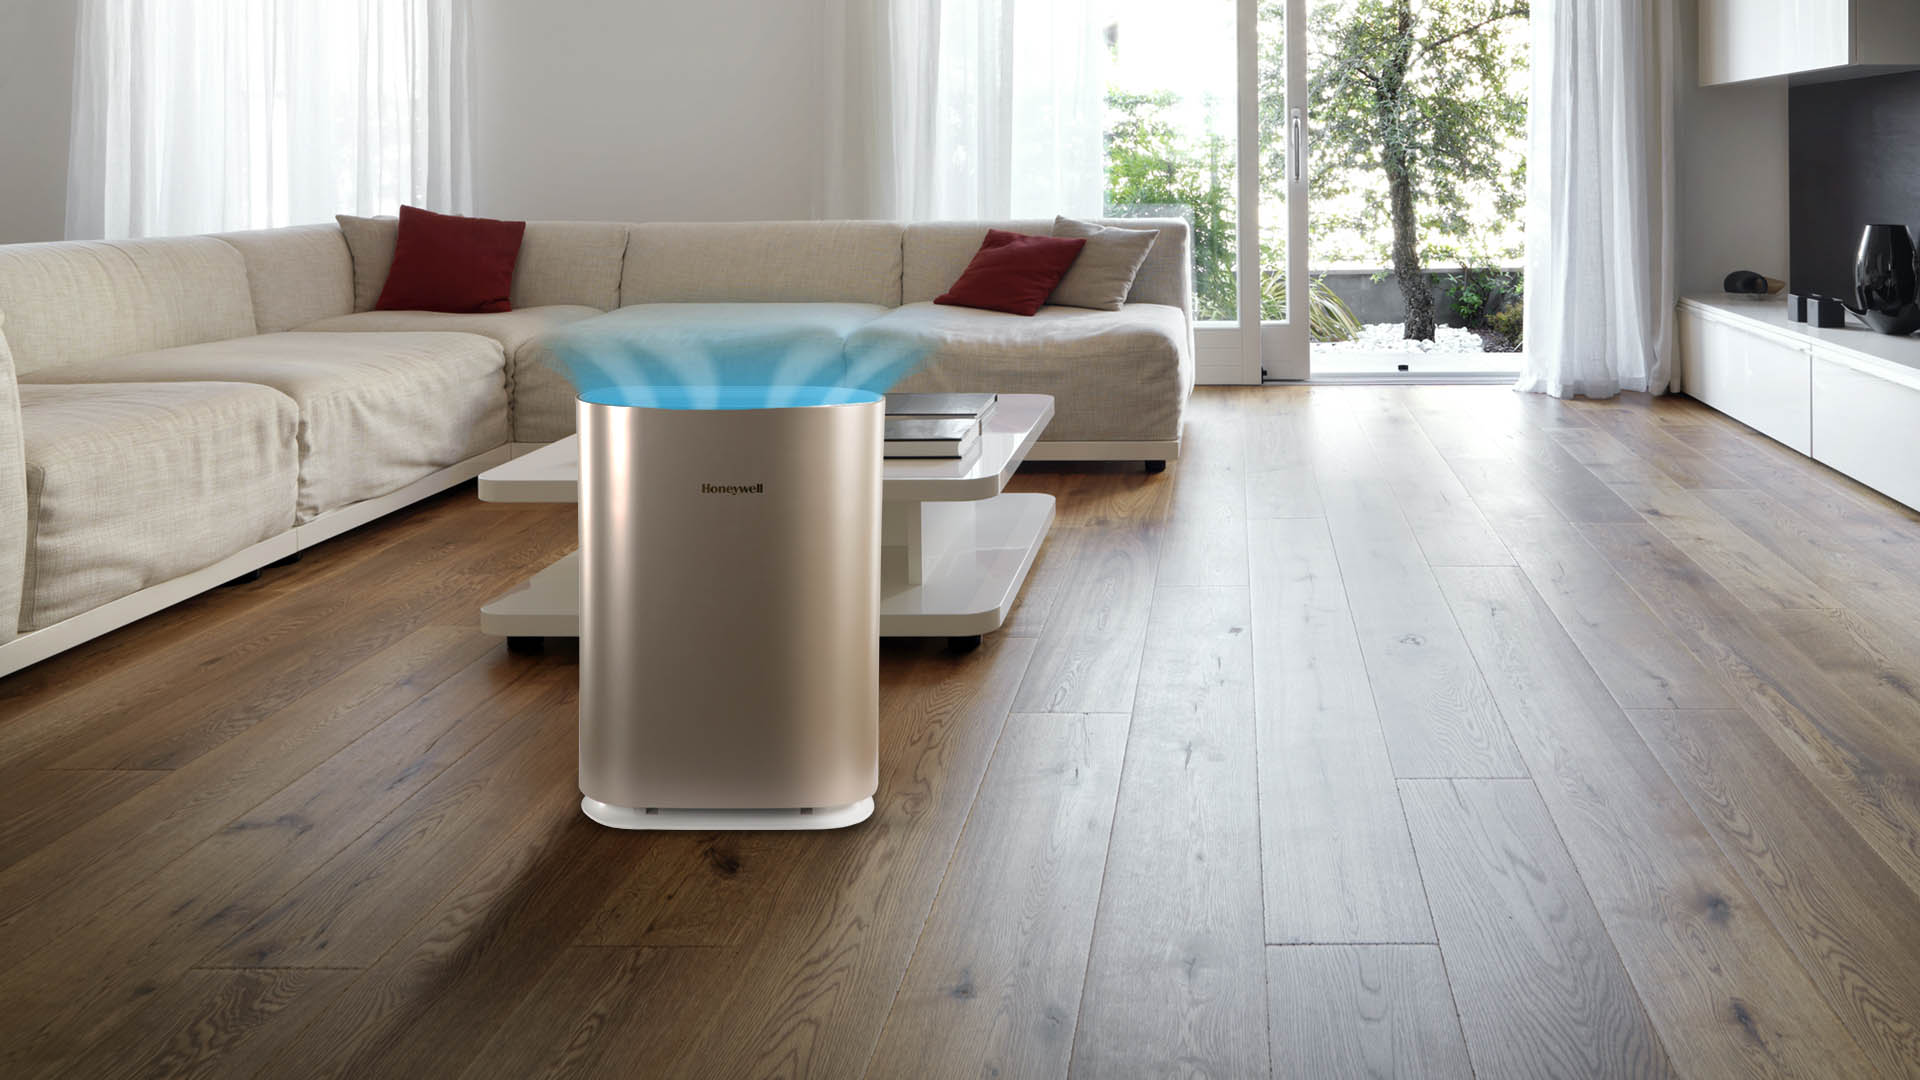 Image result for Honeywell Air Touch i8 Air Purifier